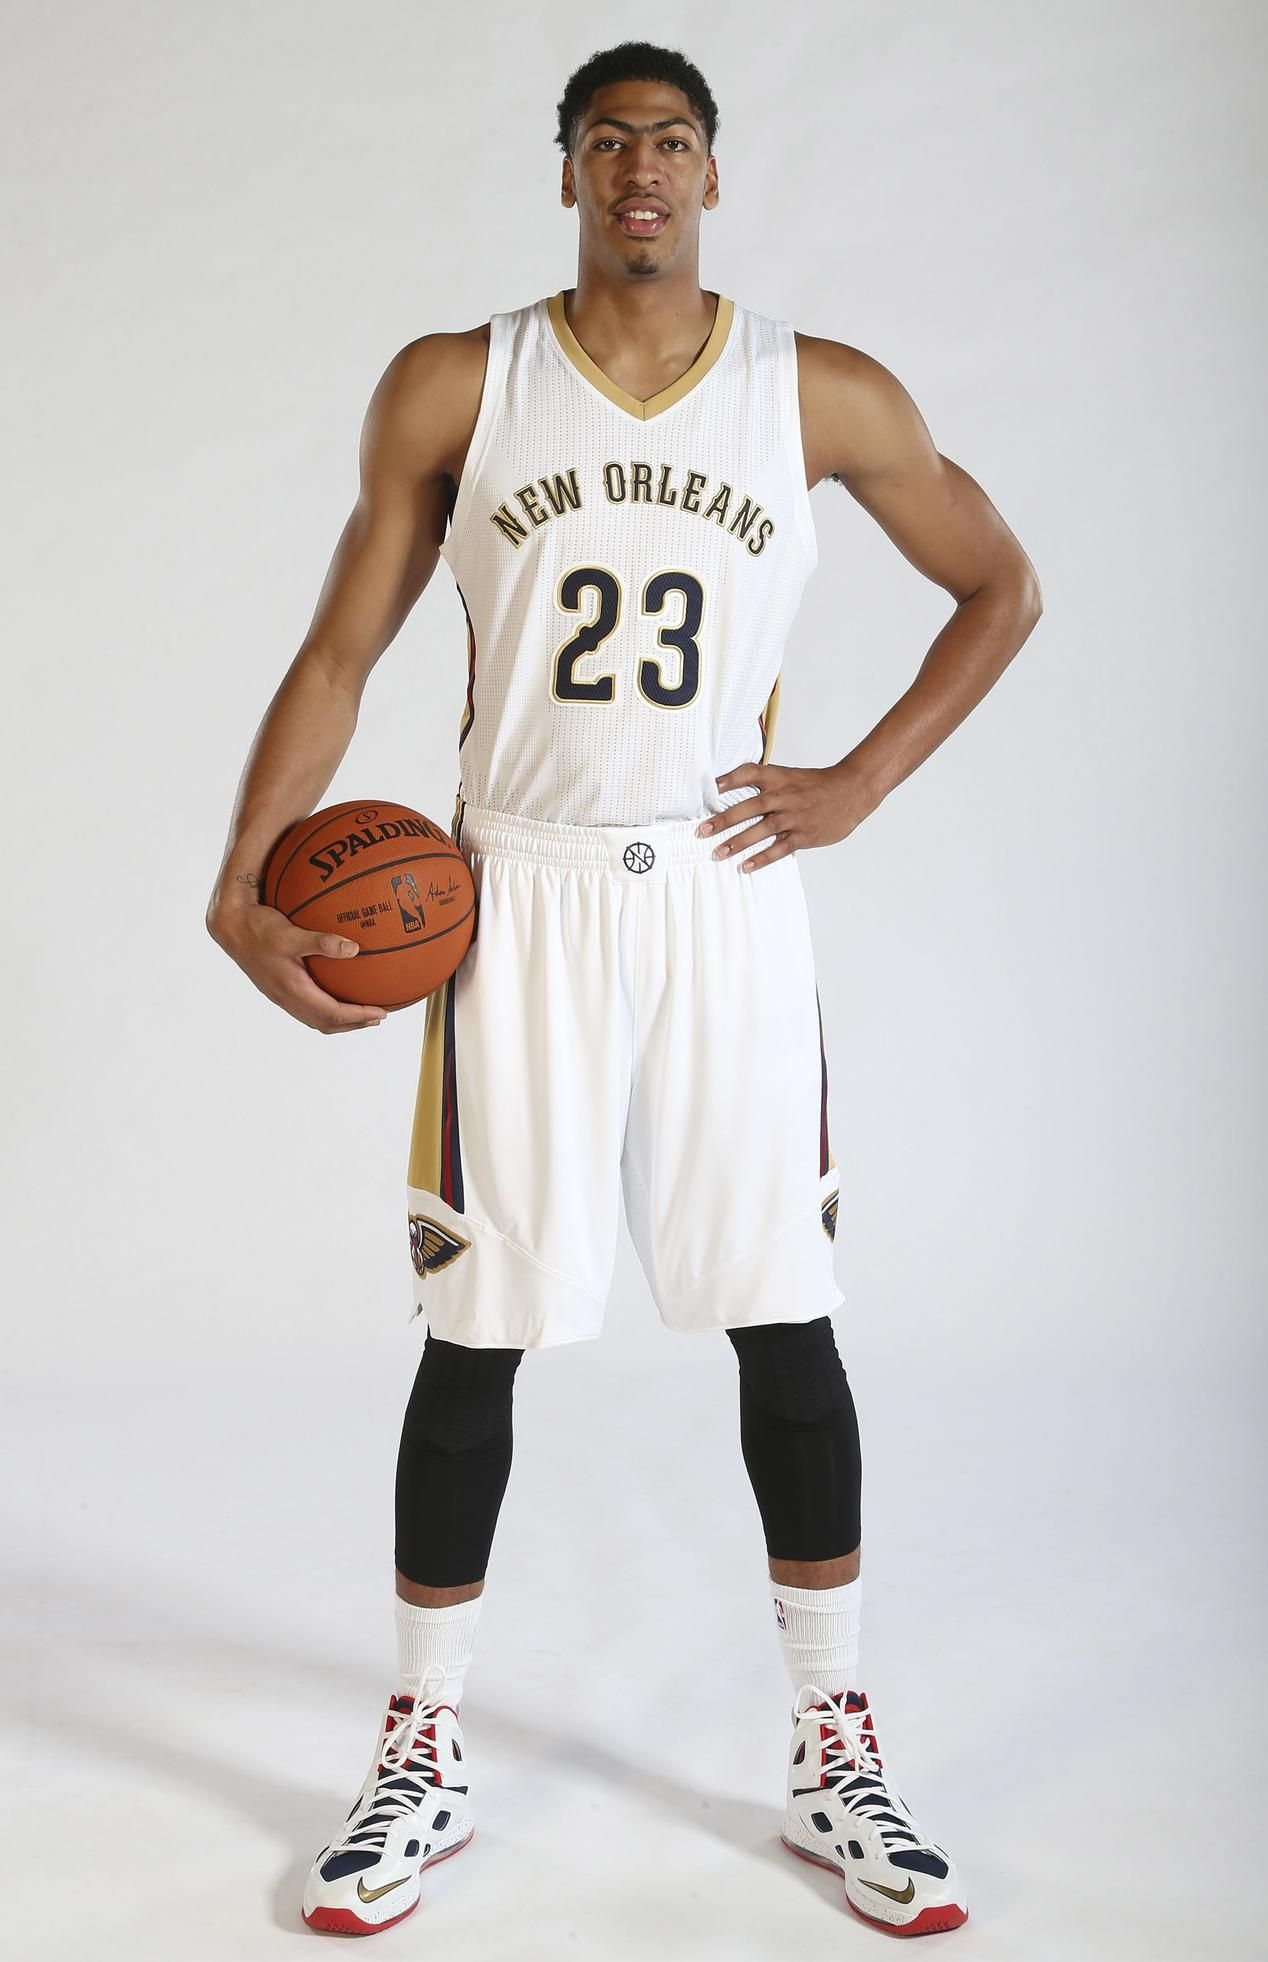 Related Image Anthony Davis Nba Players New Orleans